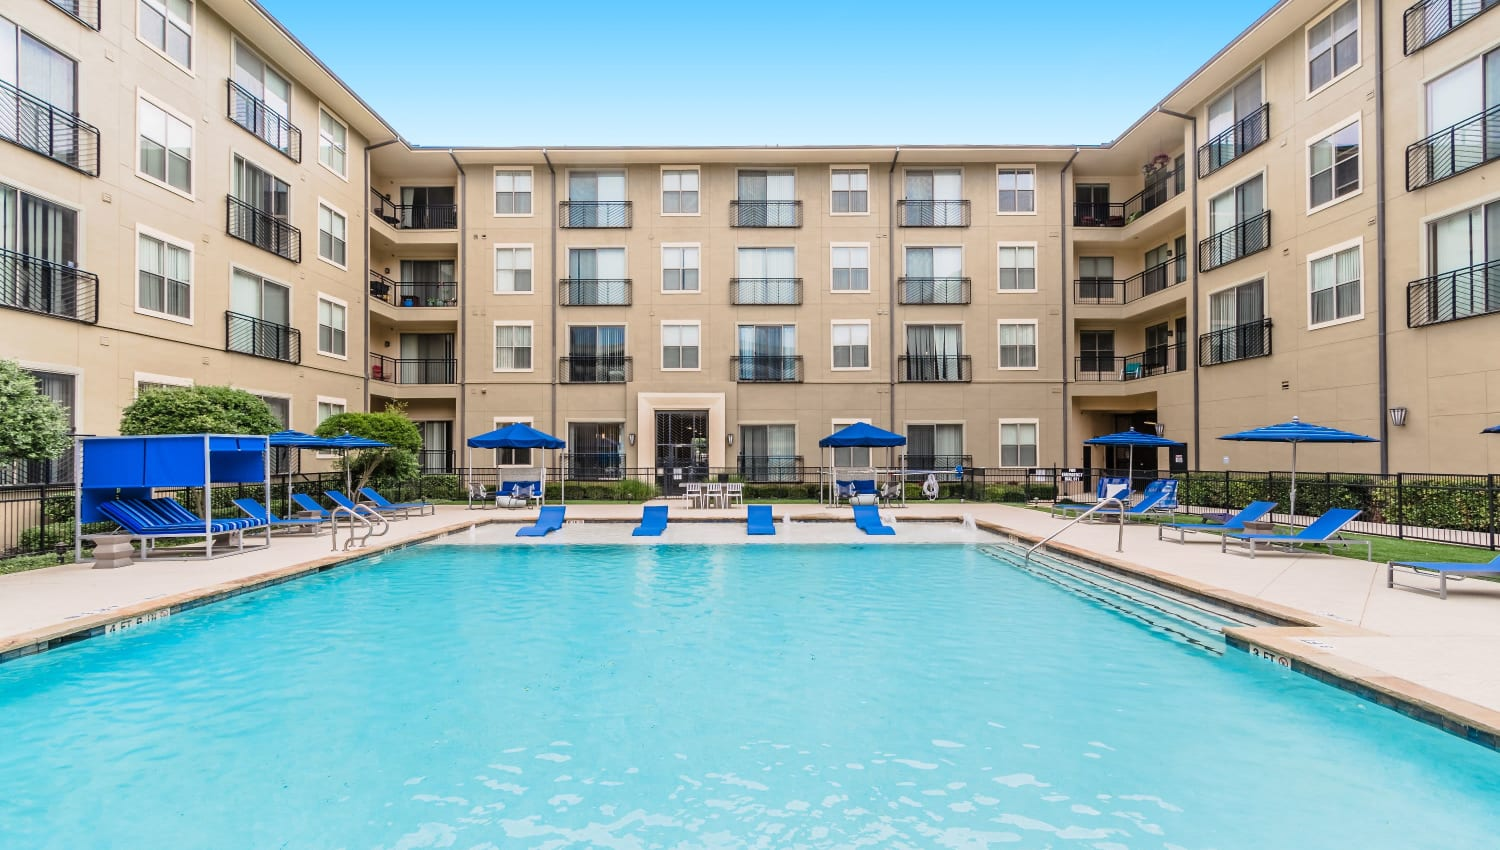 Resort-style pool at Olympus Boulevard in Frisco, Texas